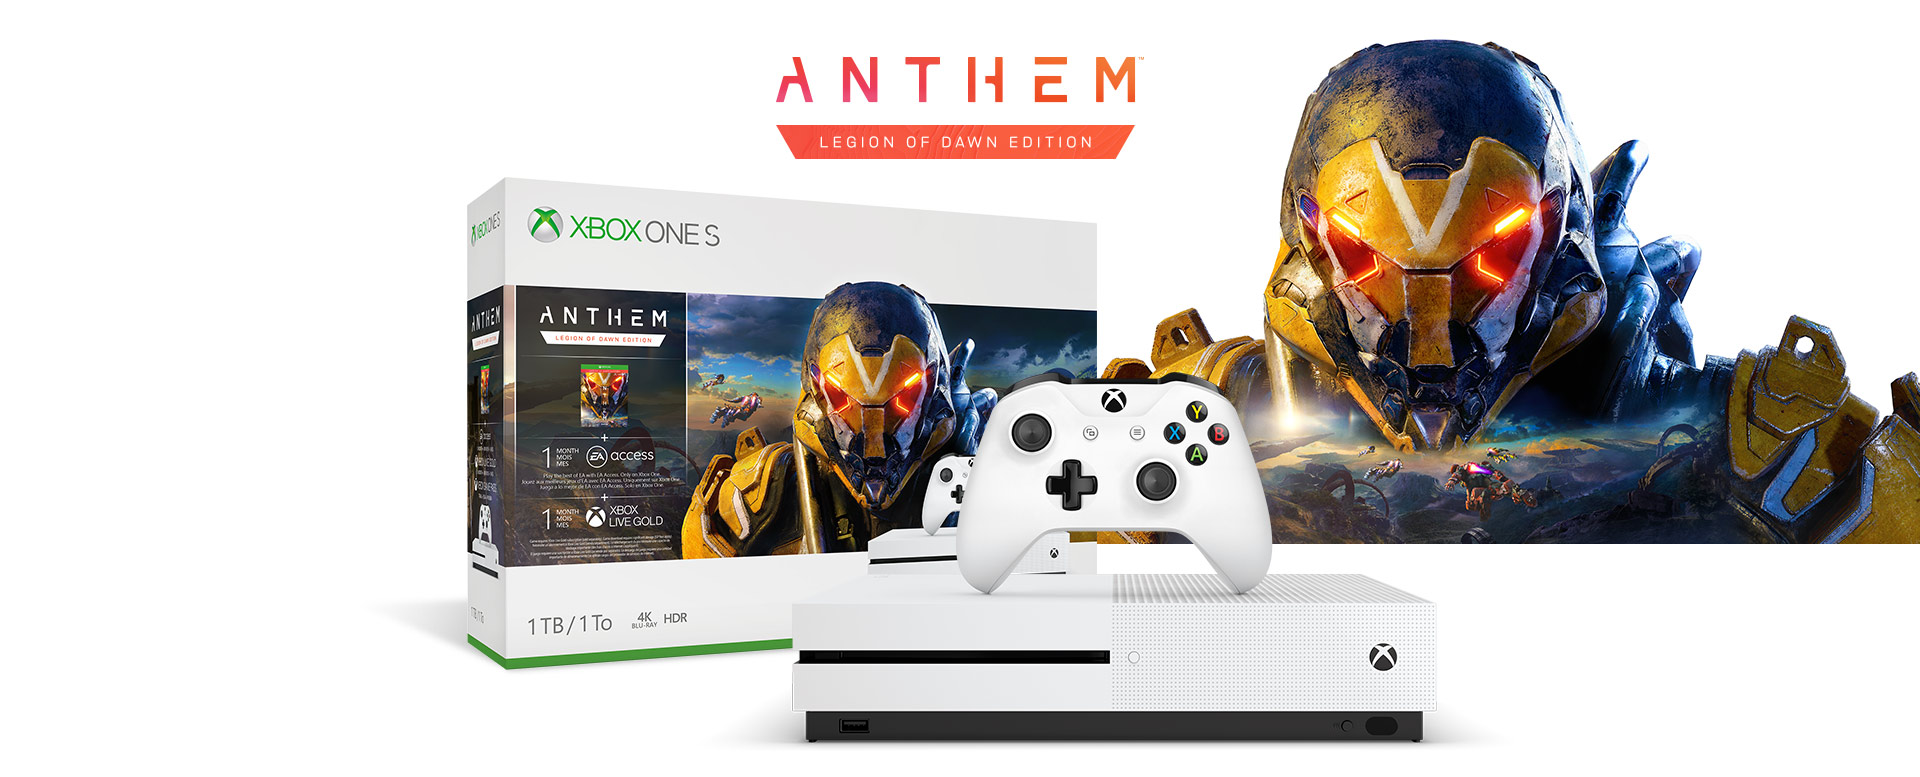 Anthem Legion of Dawn Edition, Xbox One S console with a hardware bundle box featuring Anthem game art